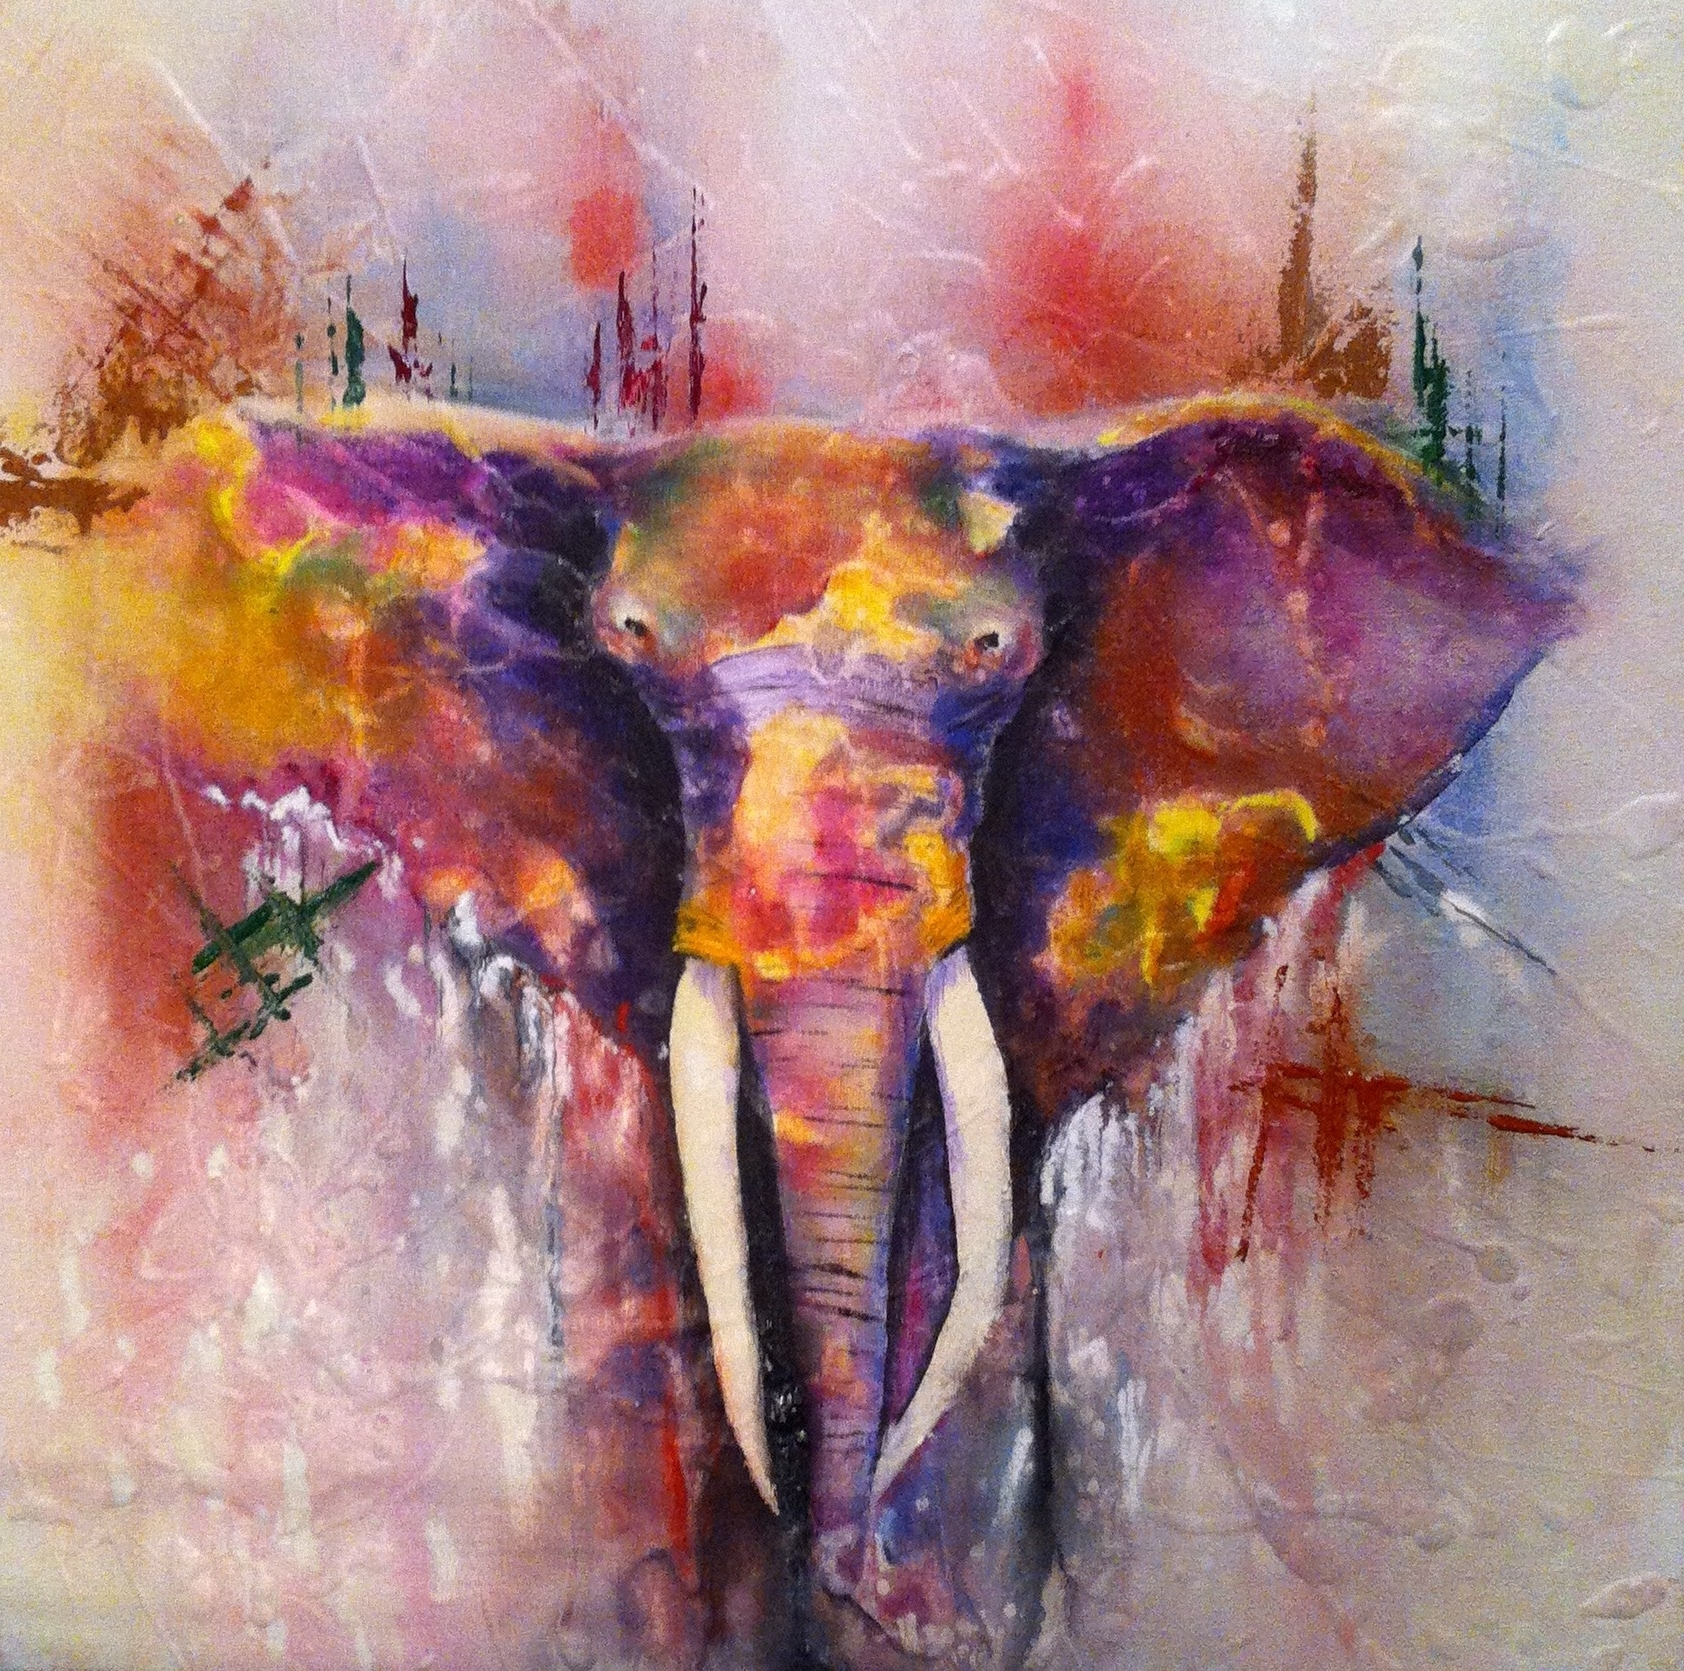 Abstract Elephant Wall Art Within Recent Wall Art Designs: Elephant Canvas Wall Art Abstract Elephant (View 7 of 15)